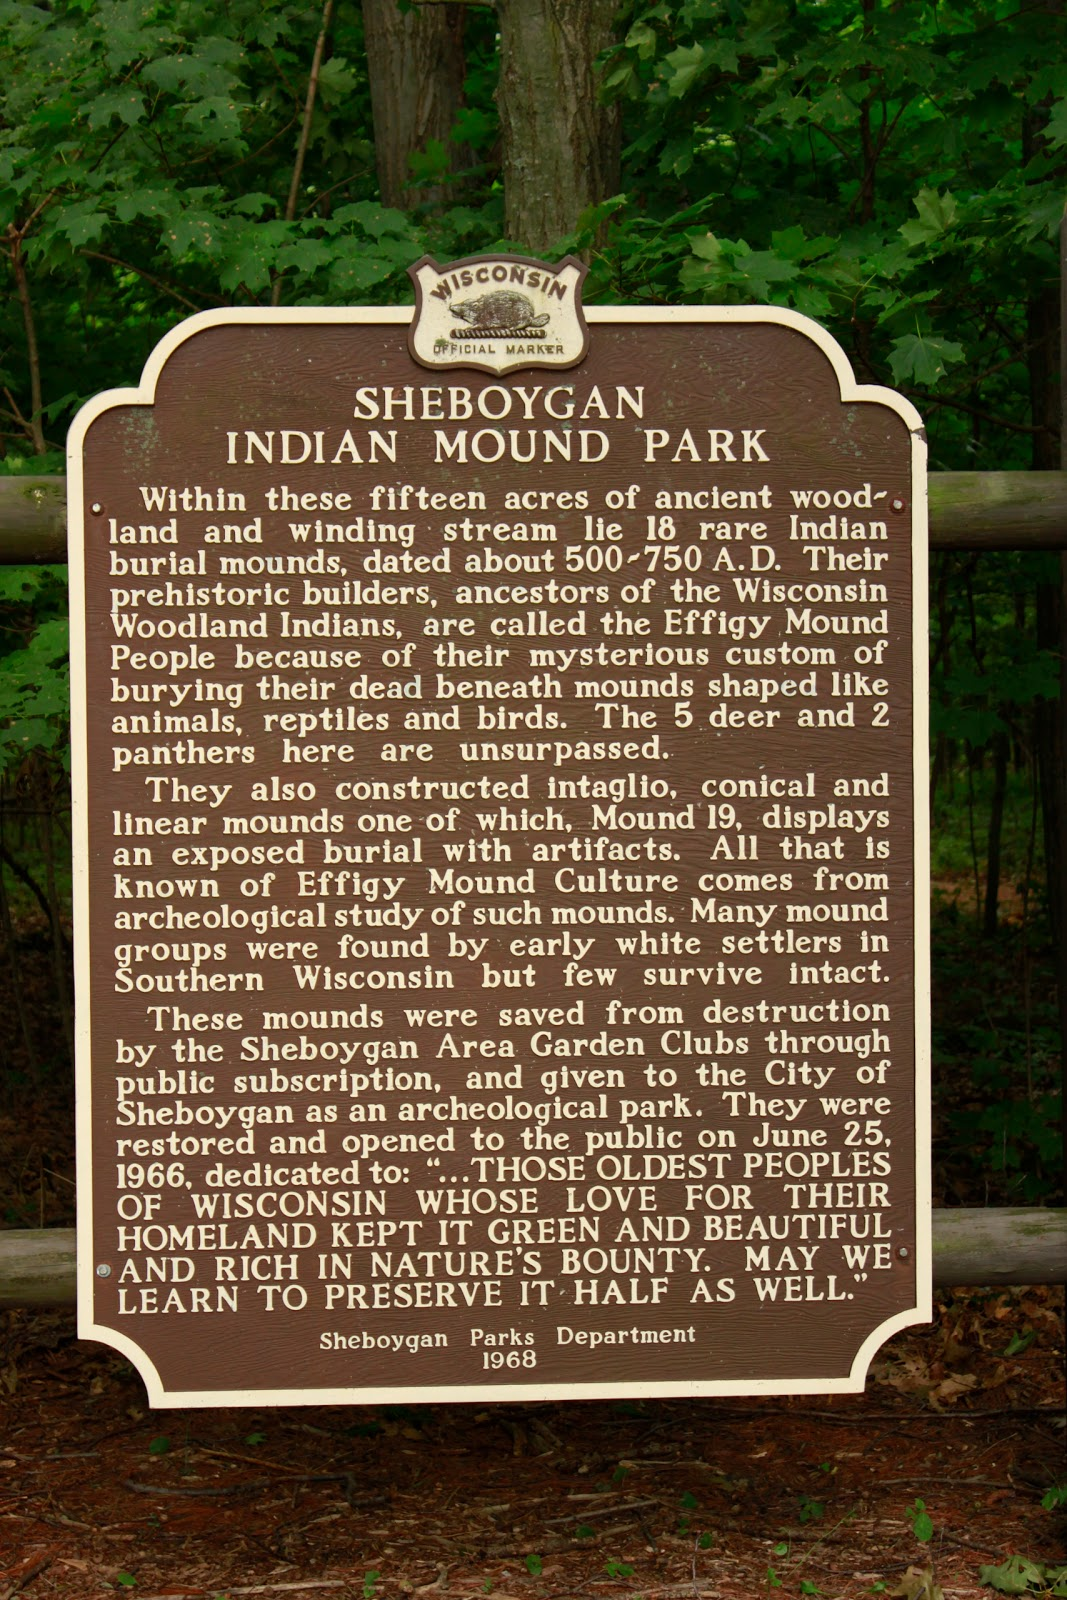 indian mound hindu singles Indian mound cemetery is a cemetery located along the northwestern turnpike (us route 50) on a promontory of the yellow banks overlooking the south branch potomac.